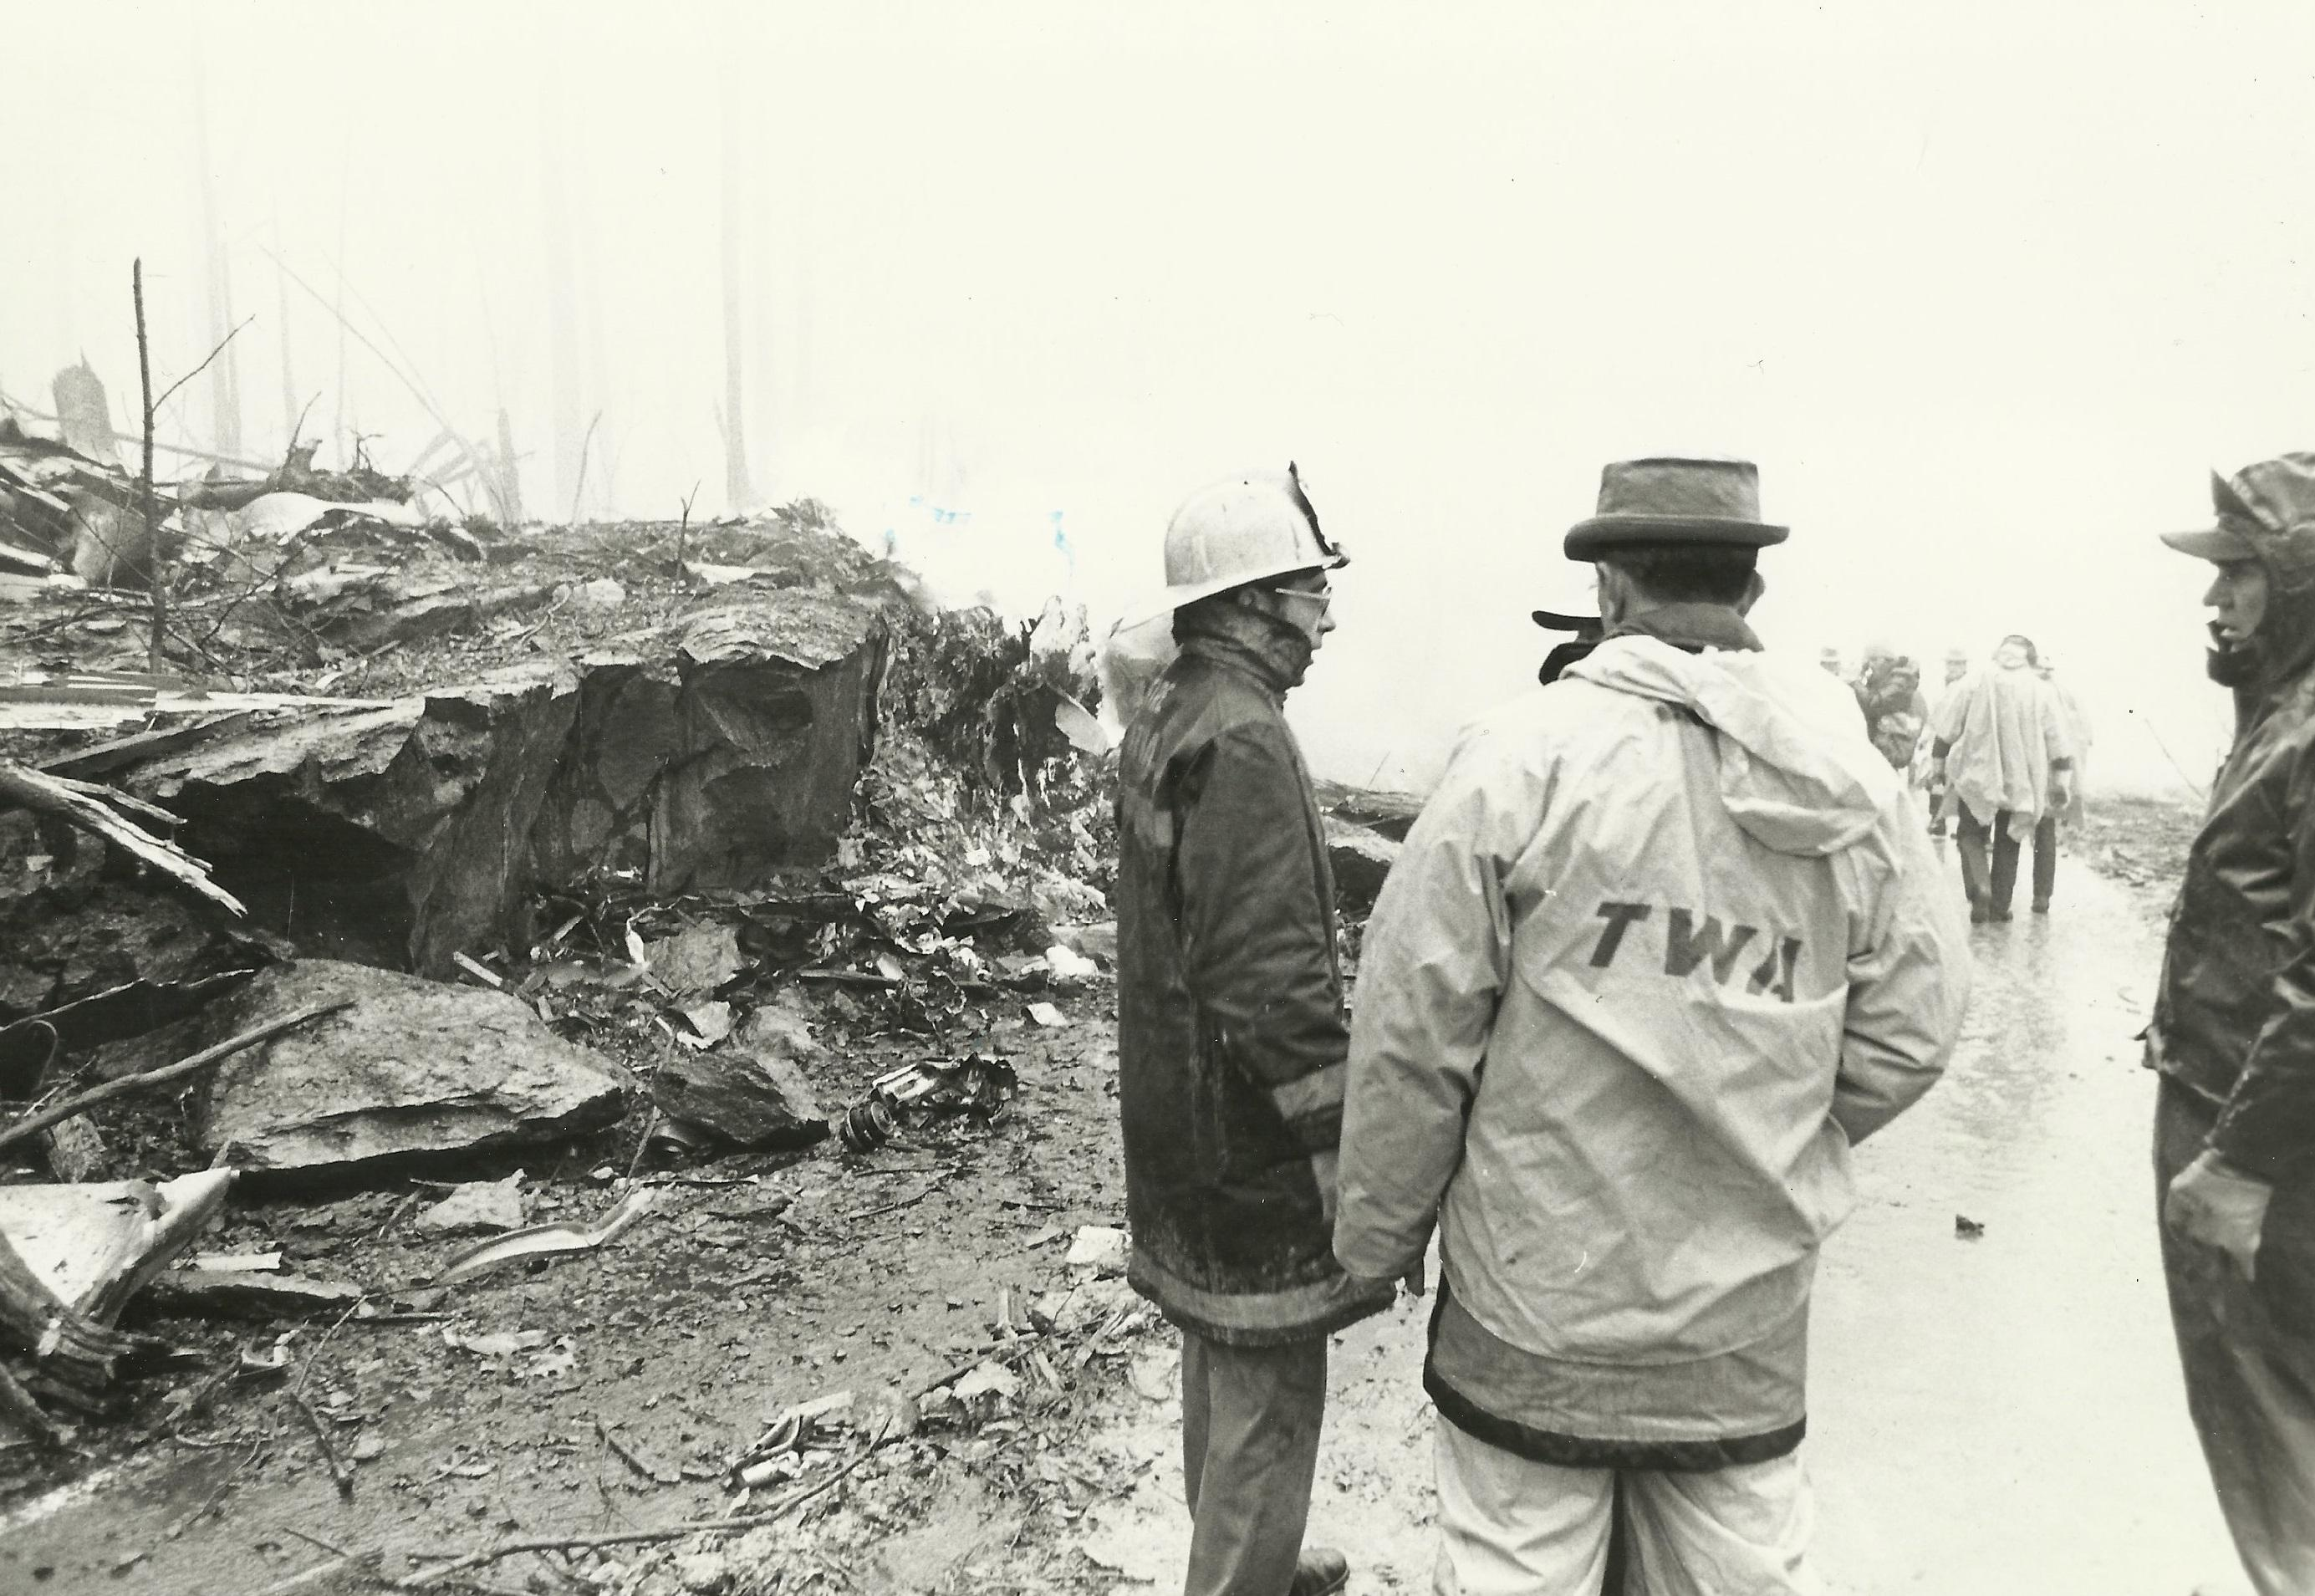 Oliver Dube, Fire Marshal for Loudoun County, and a representative from TWA assess the damage on Mount Weather, December 1, 1974. (Photo courtesy of Oliver Dube)